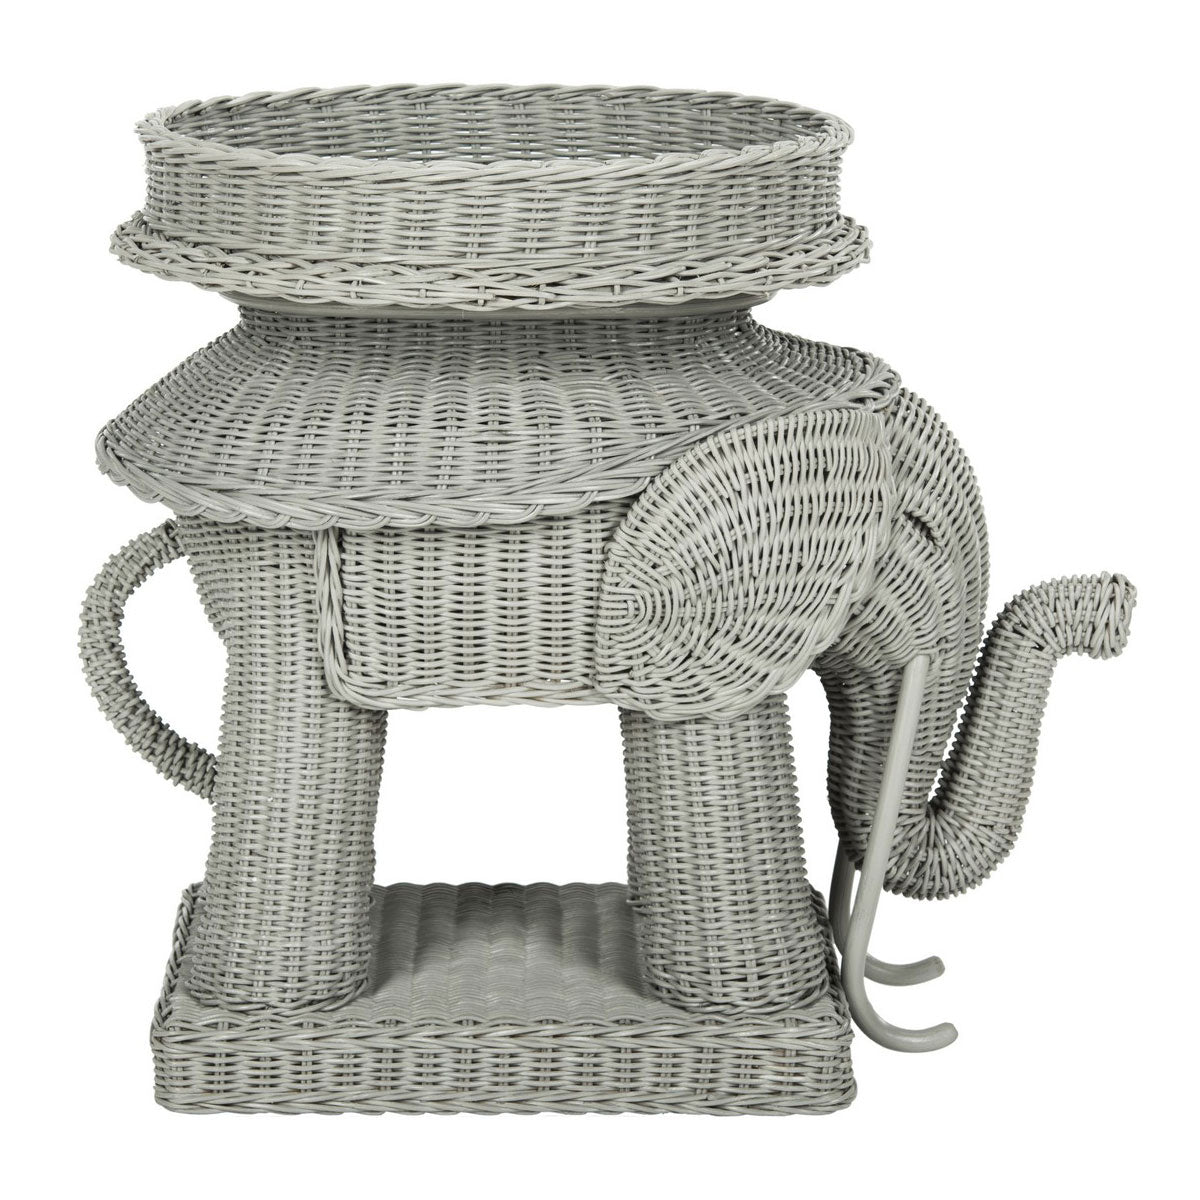 Furbish Studio - Jaipur Wicker Elephant Side Table in Gray side view